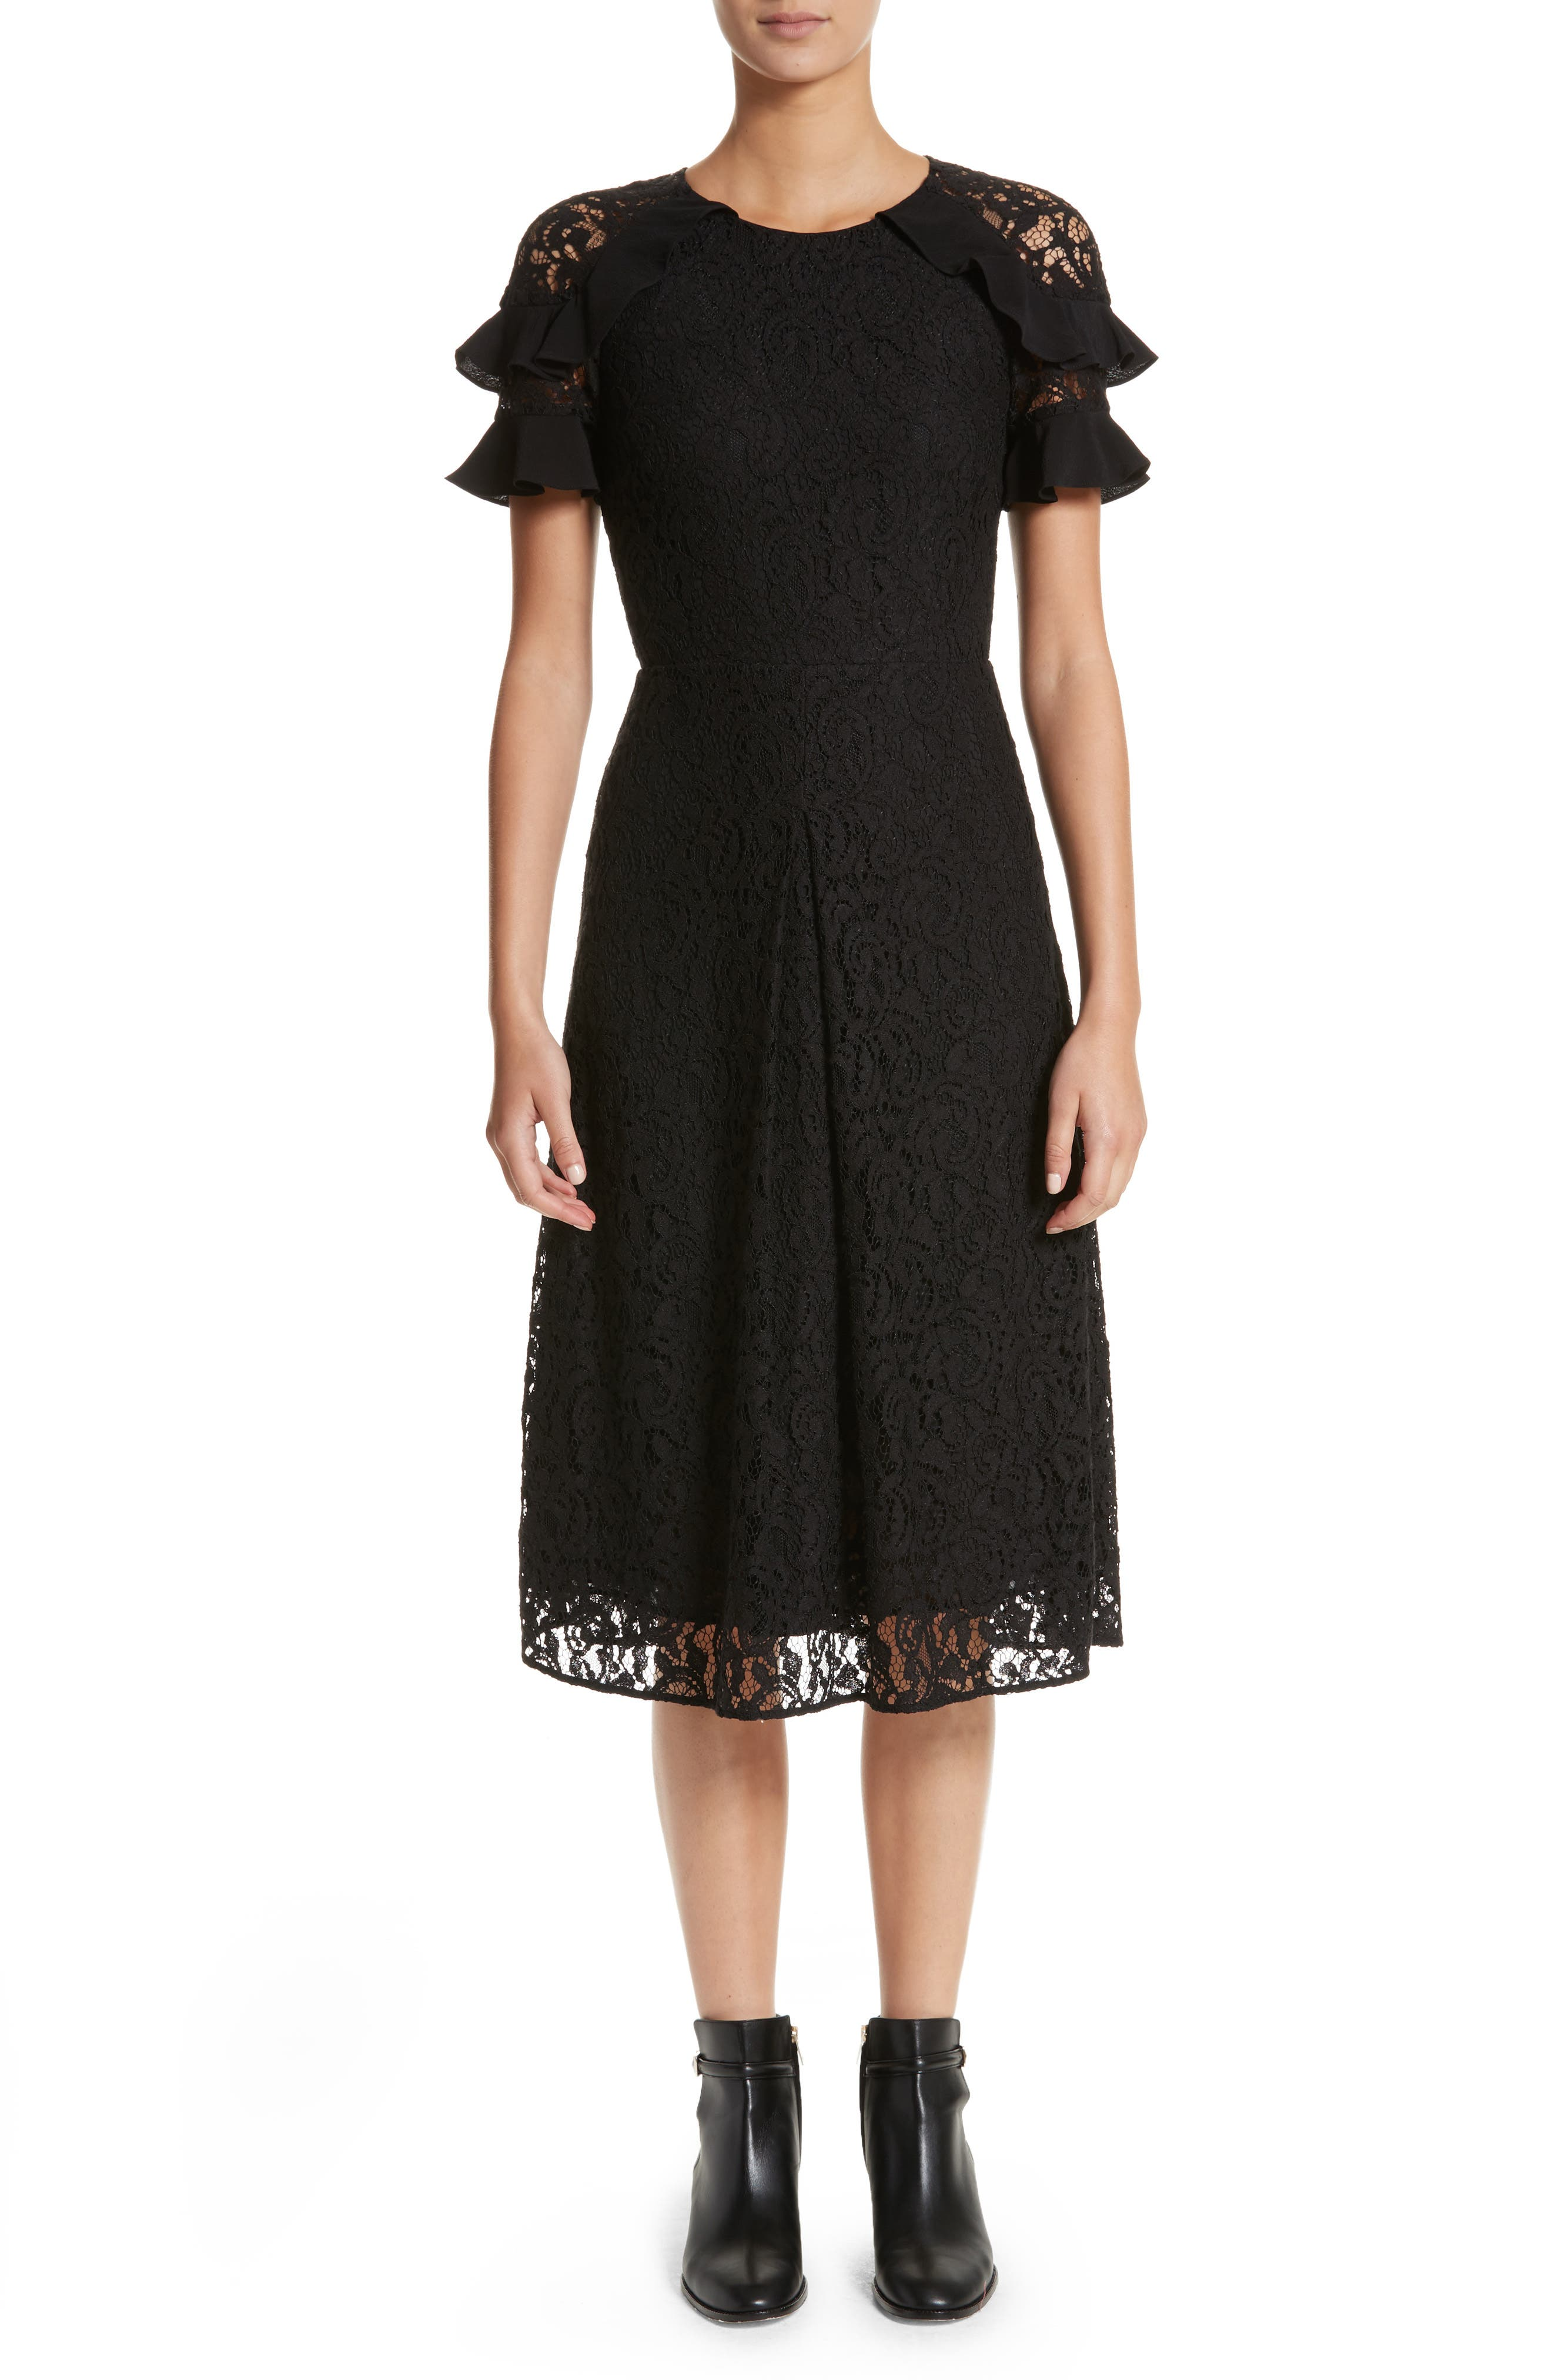 Burberry Zahramf Ruffle Lace Dress